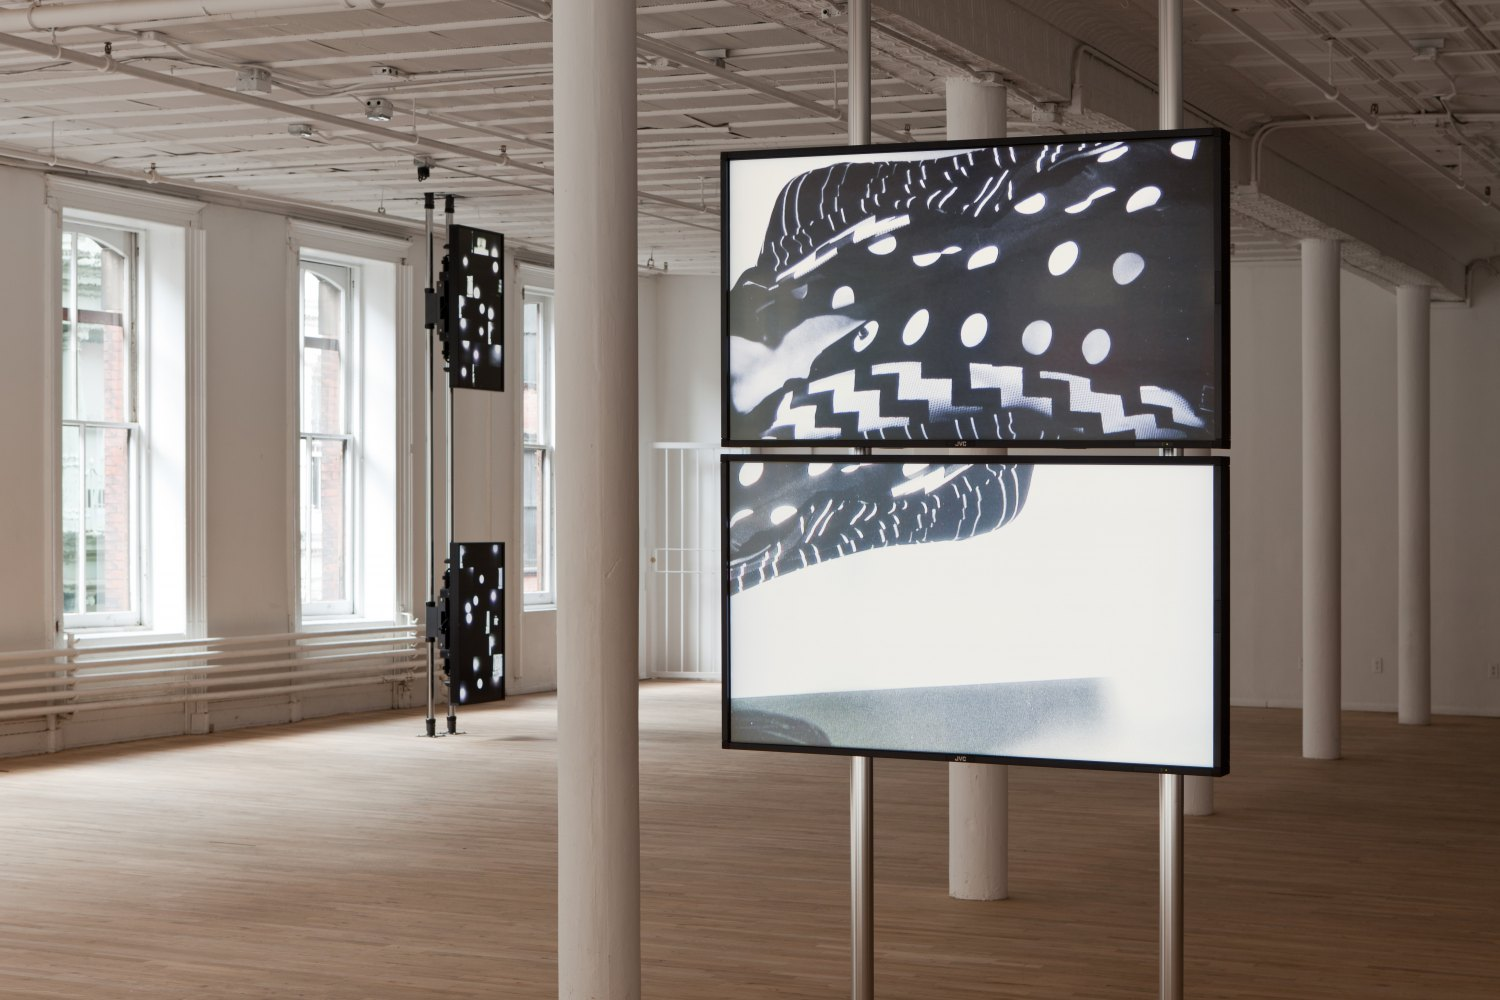 Hilary Lloyd Moon, 2001 (left), Shirt, 2011 (right) Installation view, Artists Space, New York 2011, photo Daniel Pérez